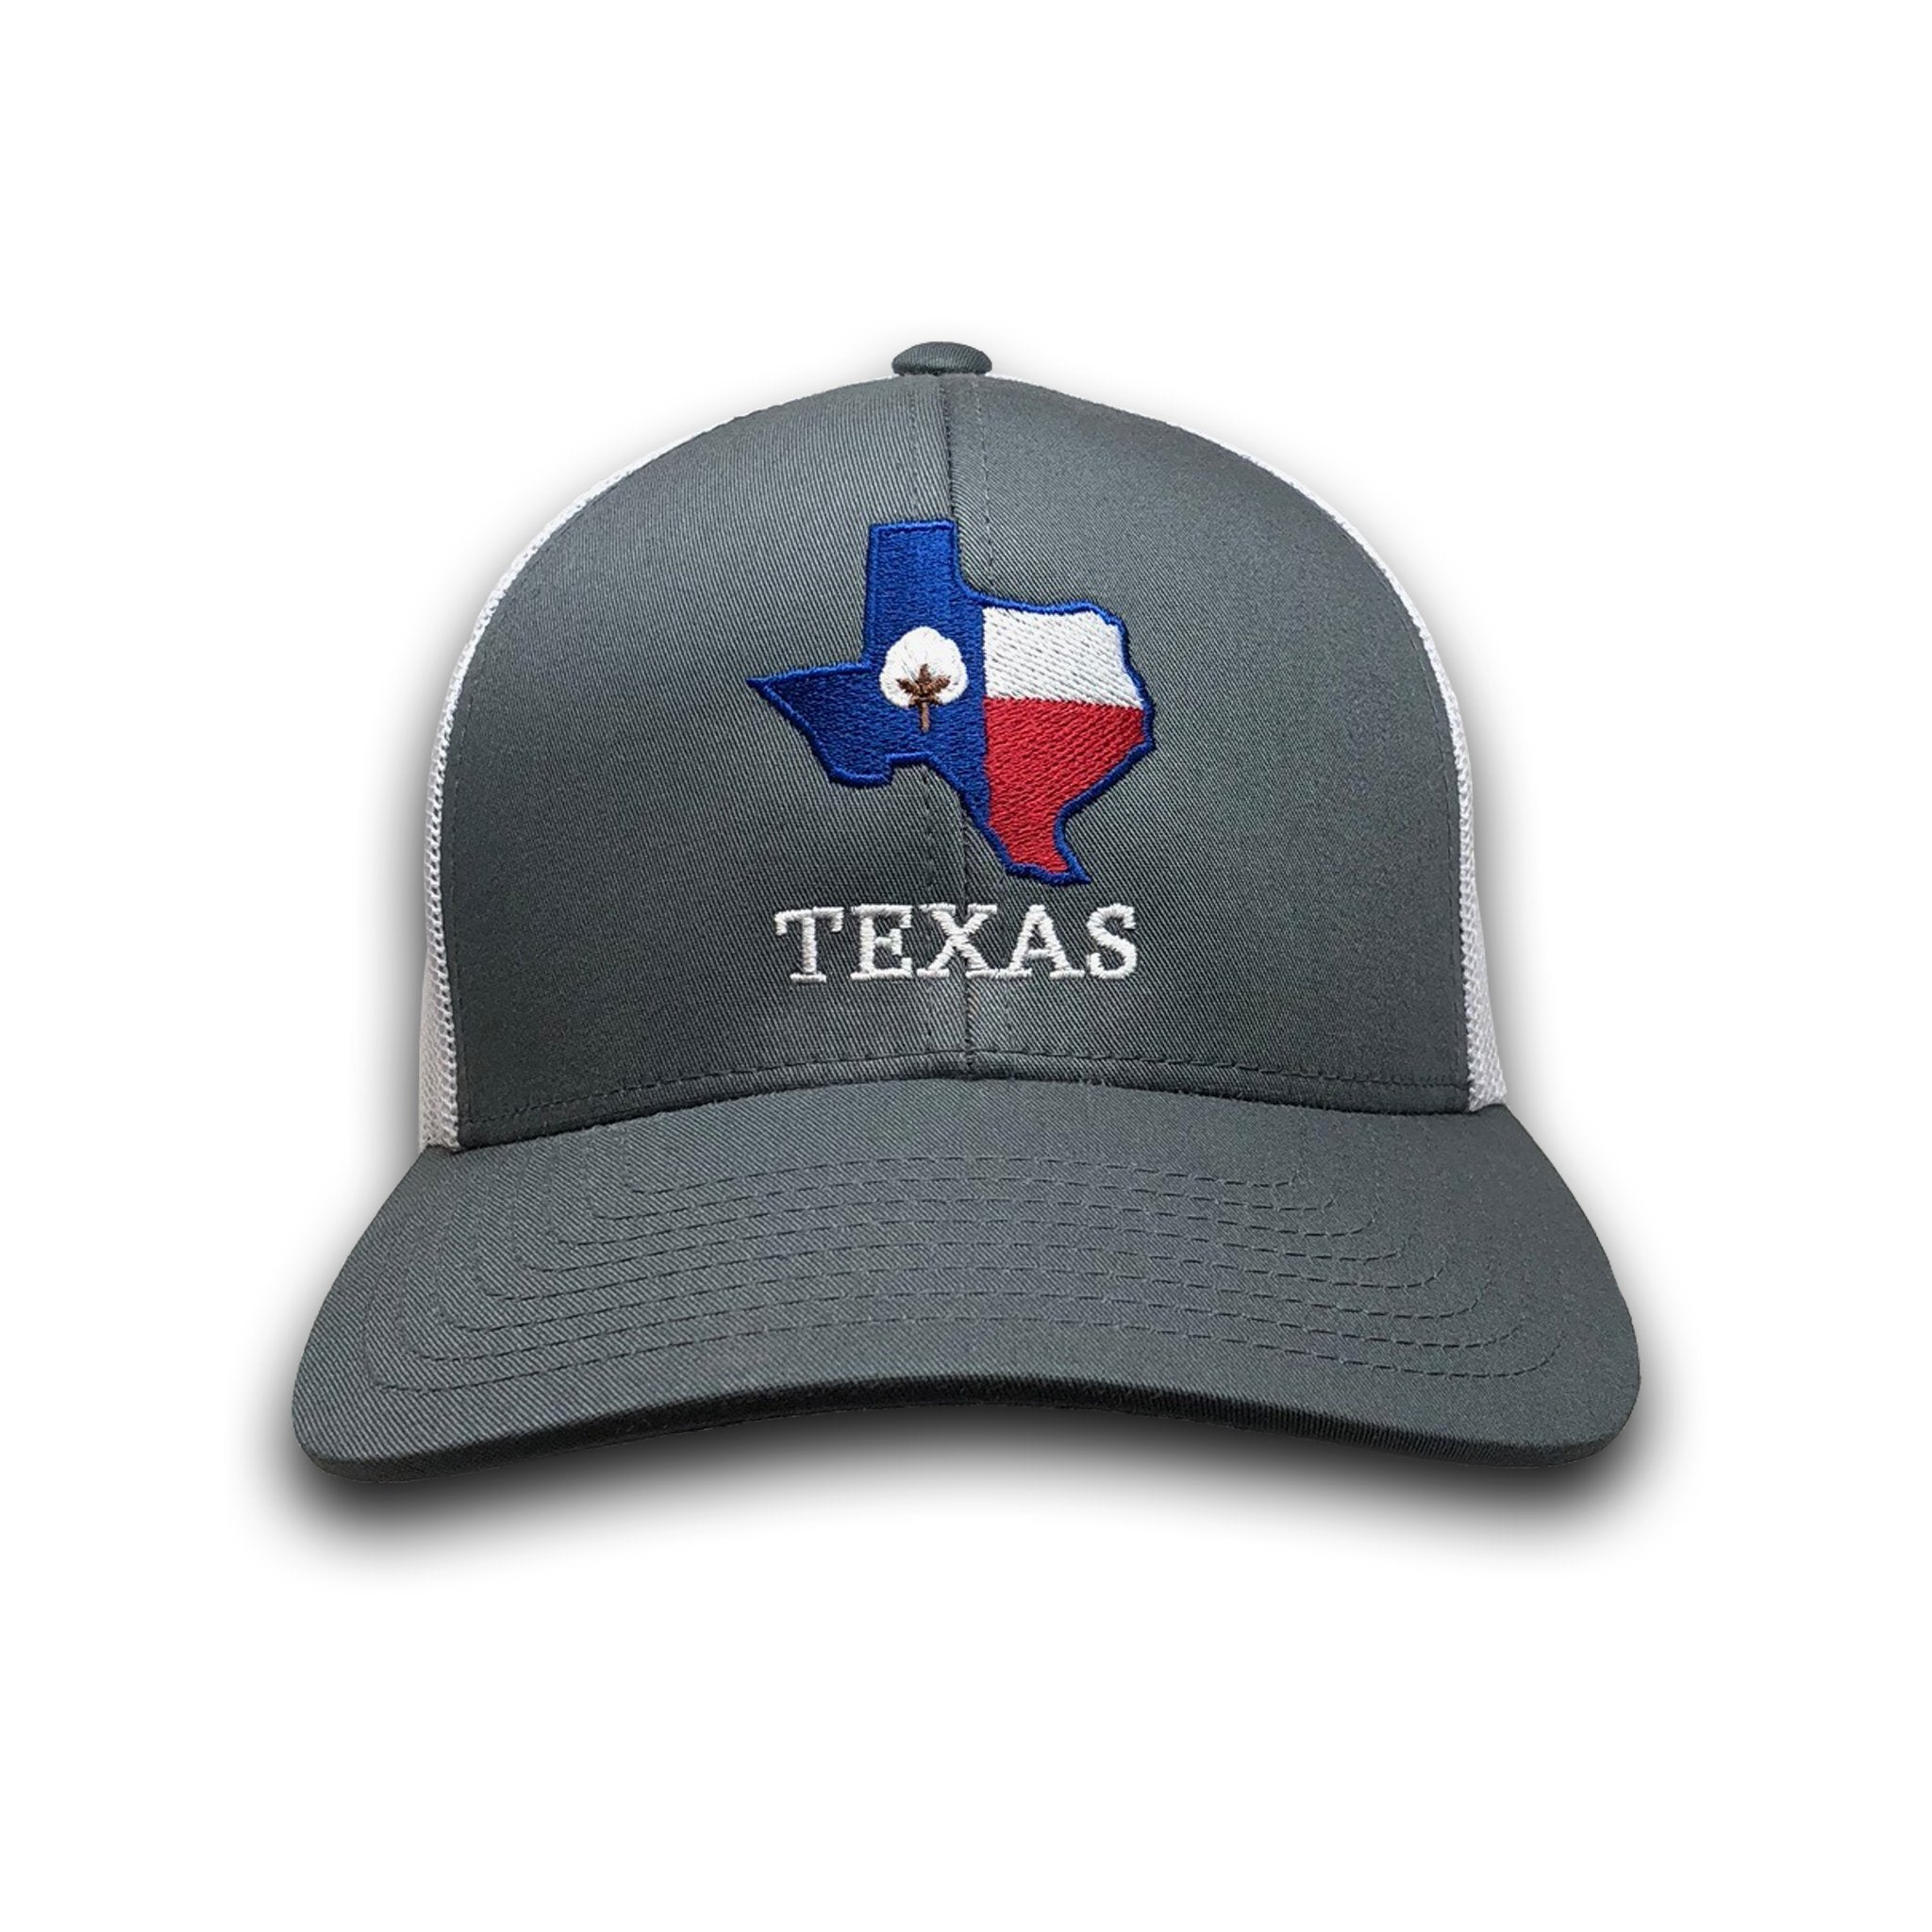 6a052fbf7a3310 best price old state pride hats graphite and white w state flag texas texas  trucker hats